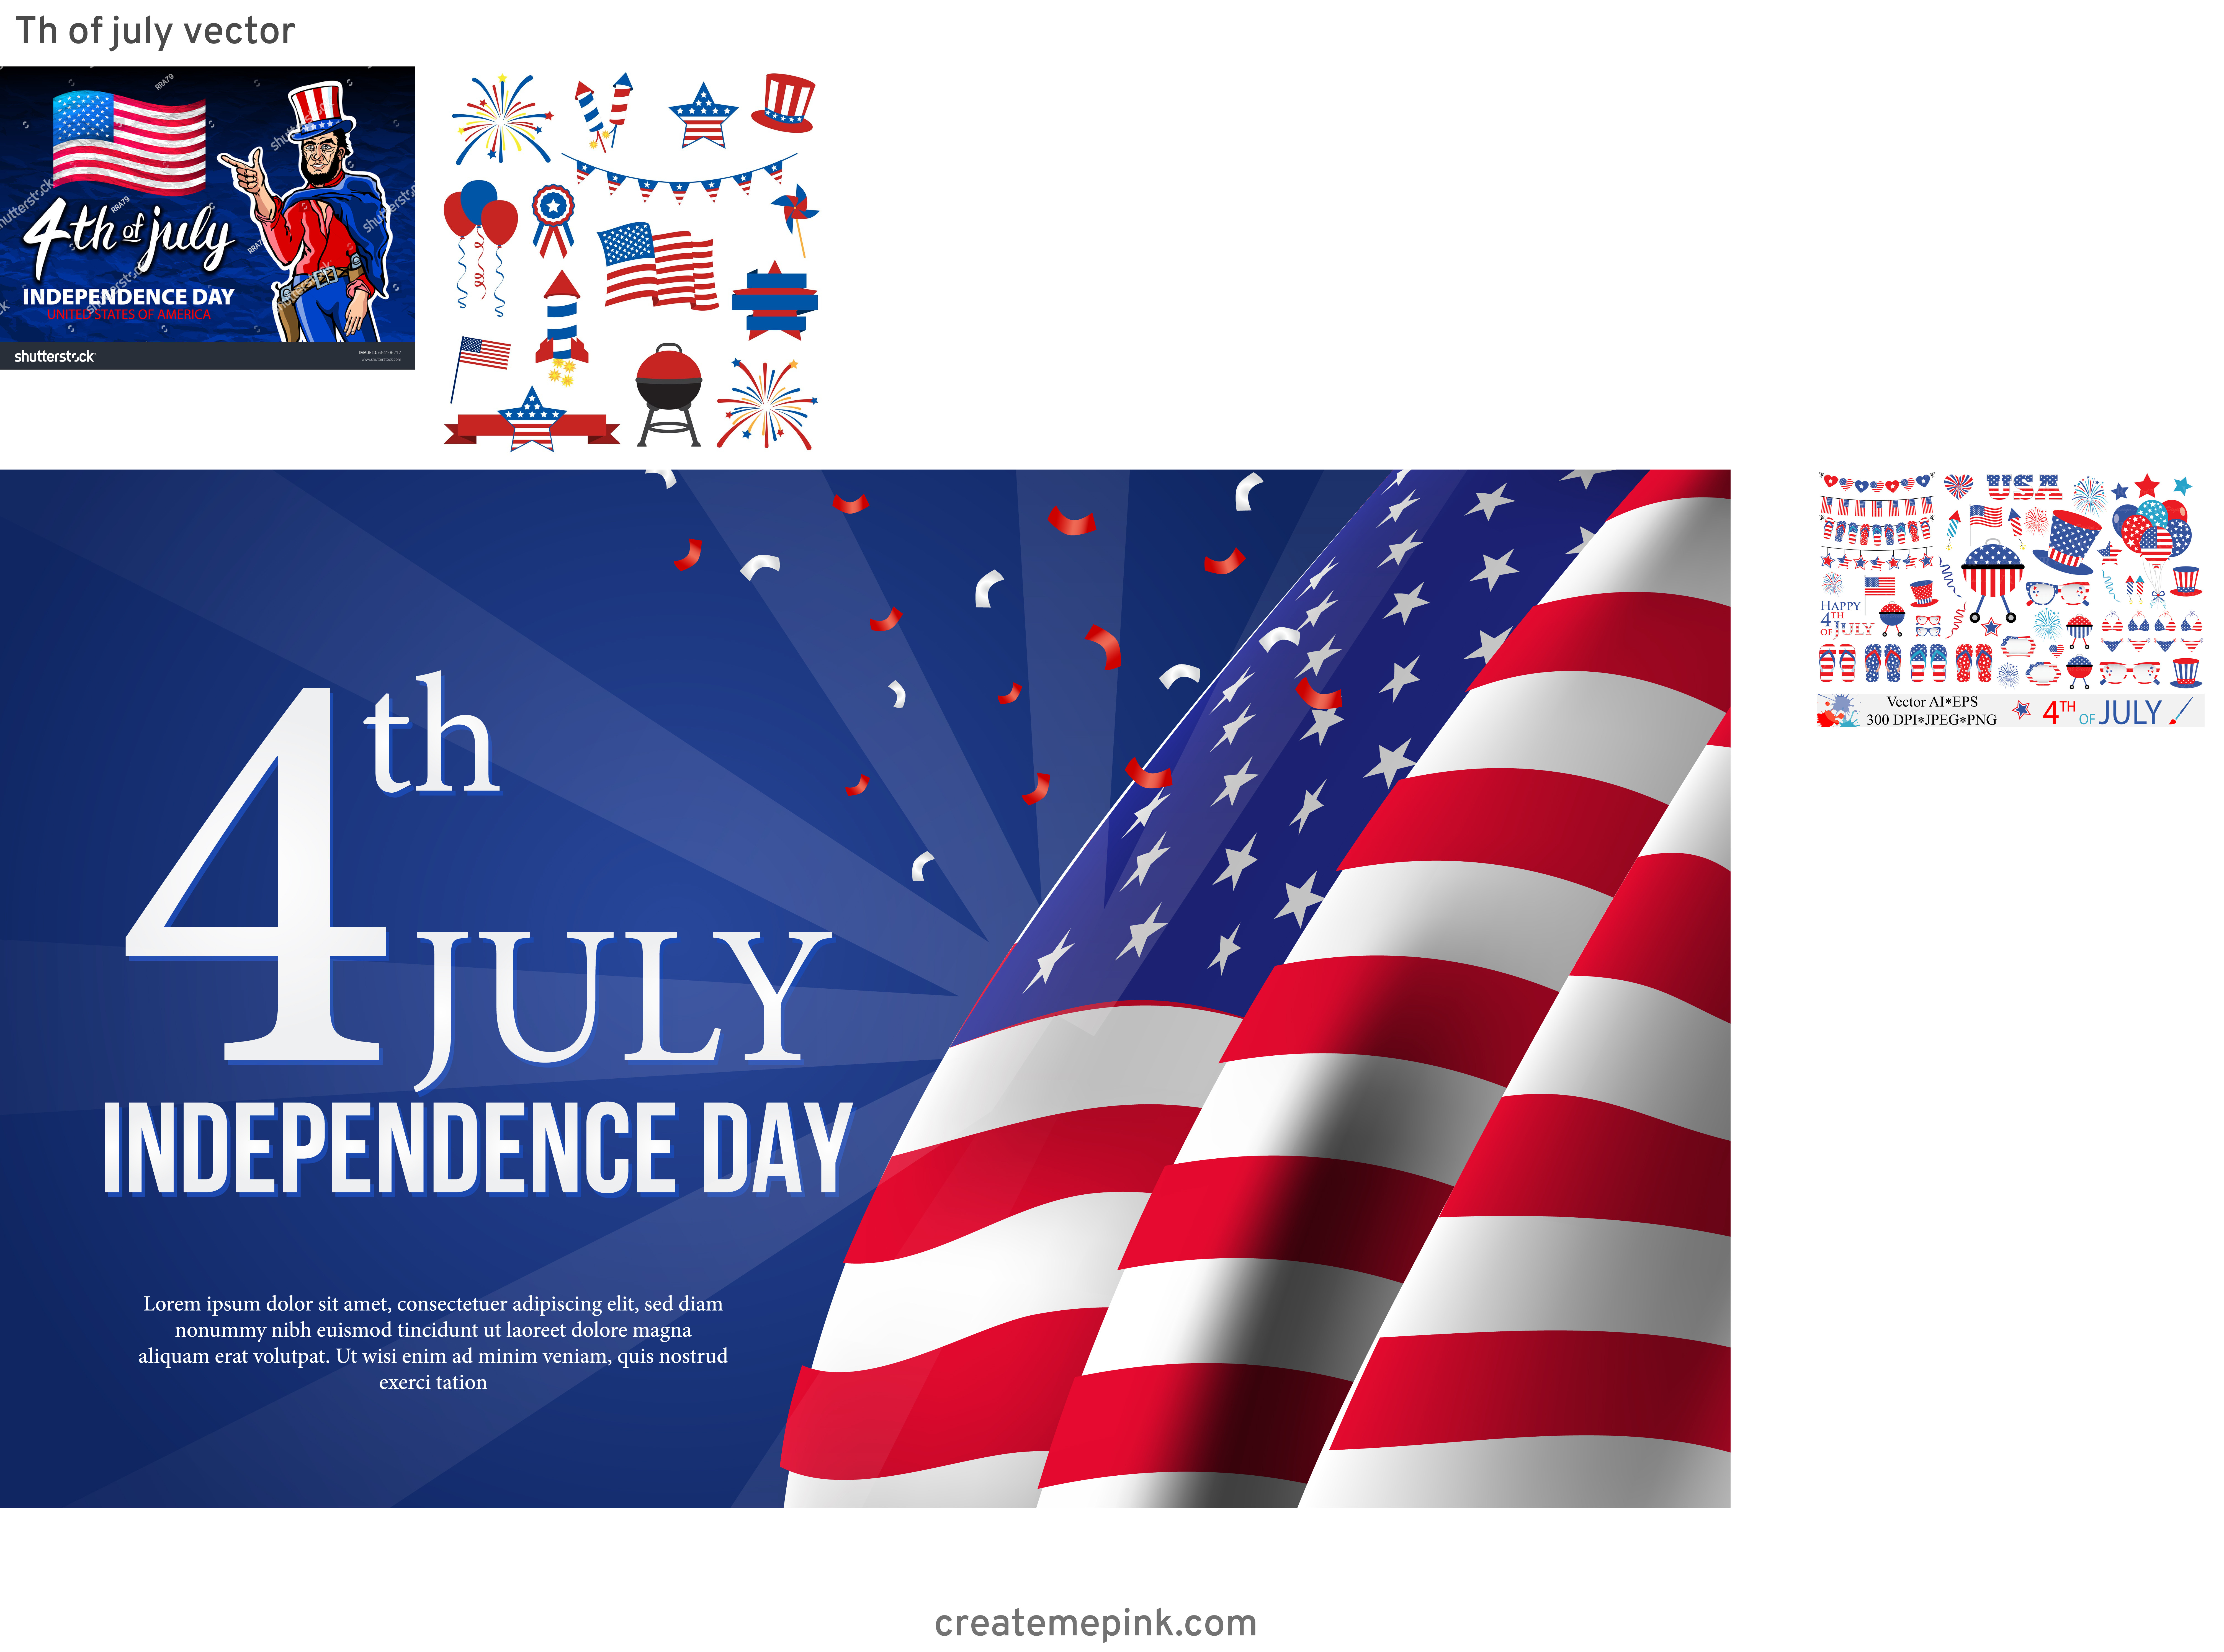 4th Of July Vectors For Men's: Th Of July Vector